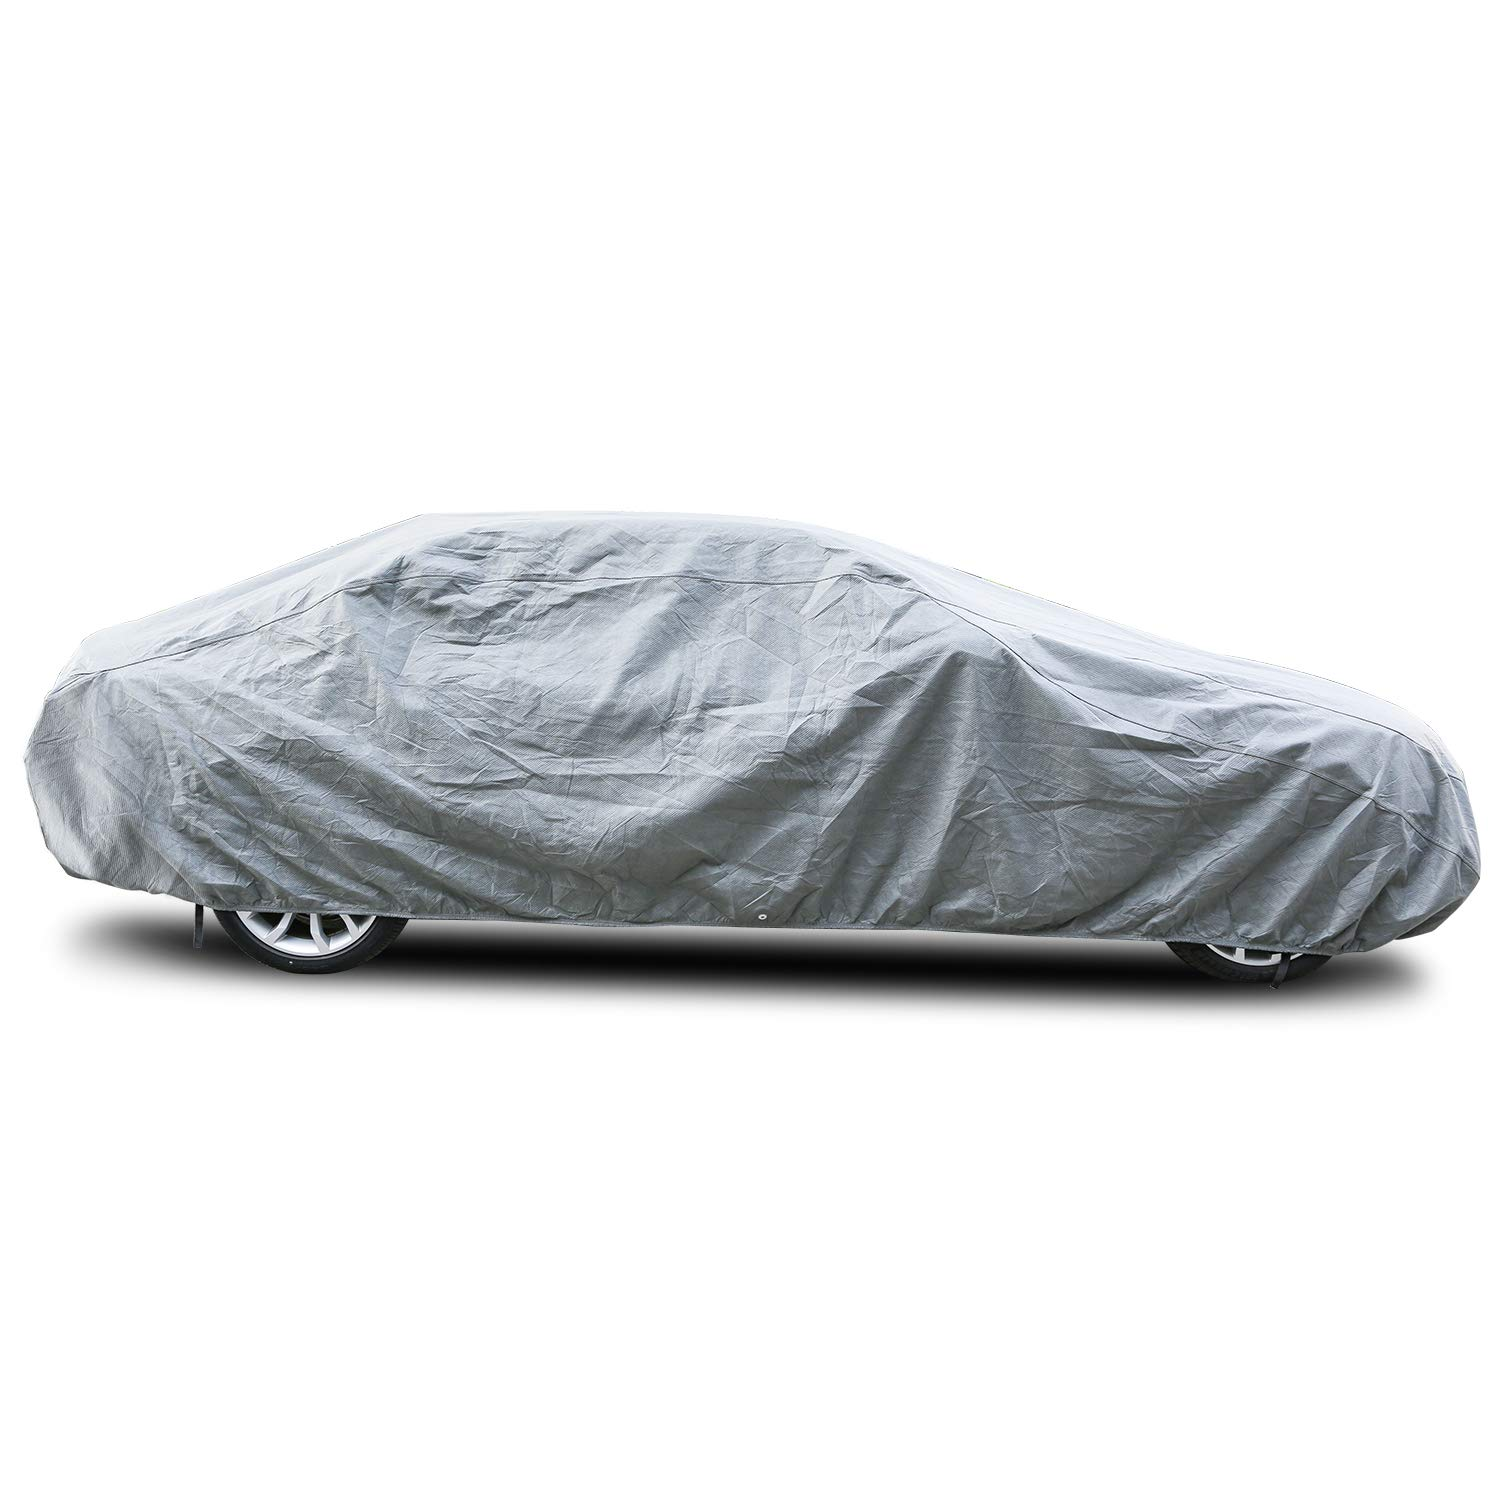 Arch Motoring Car Cover Fit Full Car Up to 200 3 Layer Dustproof Windproof Breathable Car Covers for Automobiles